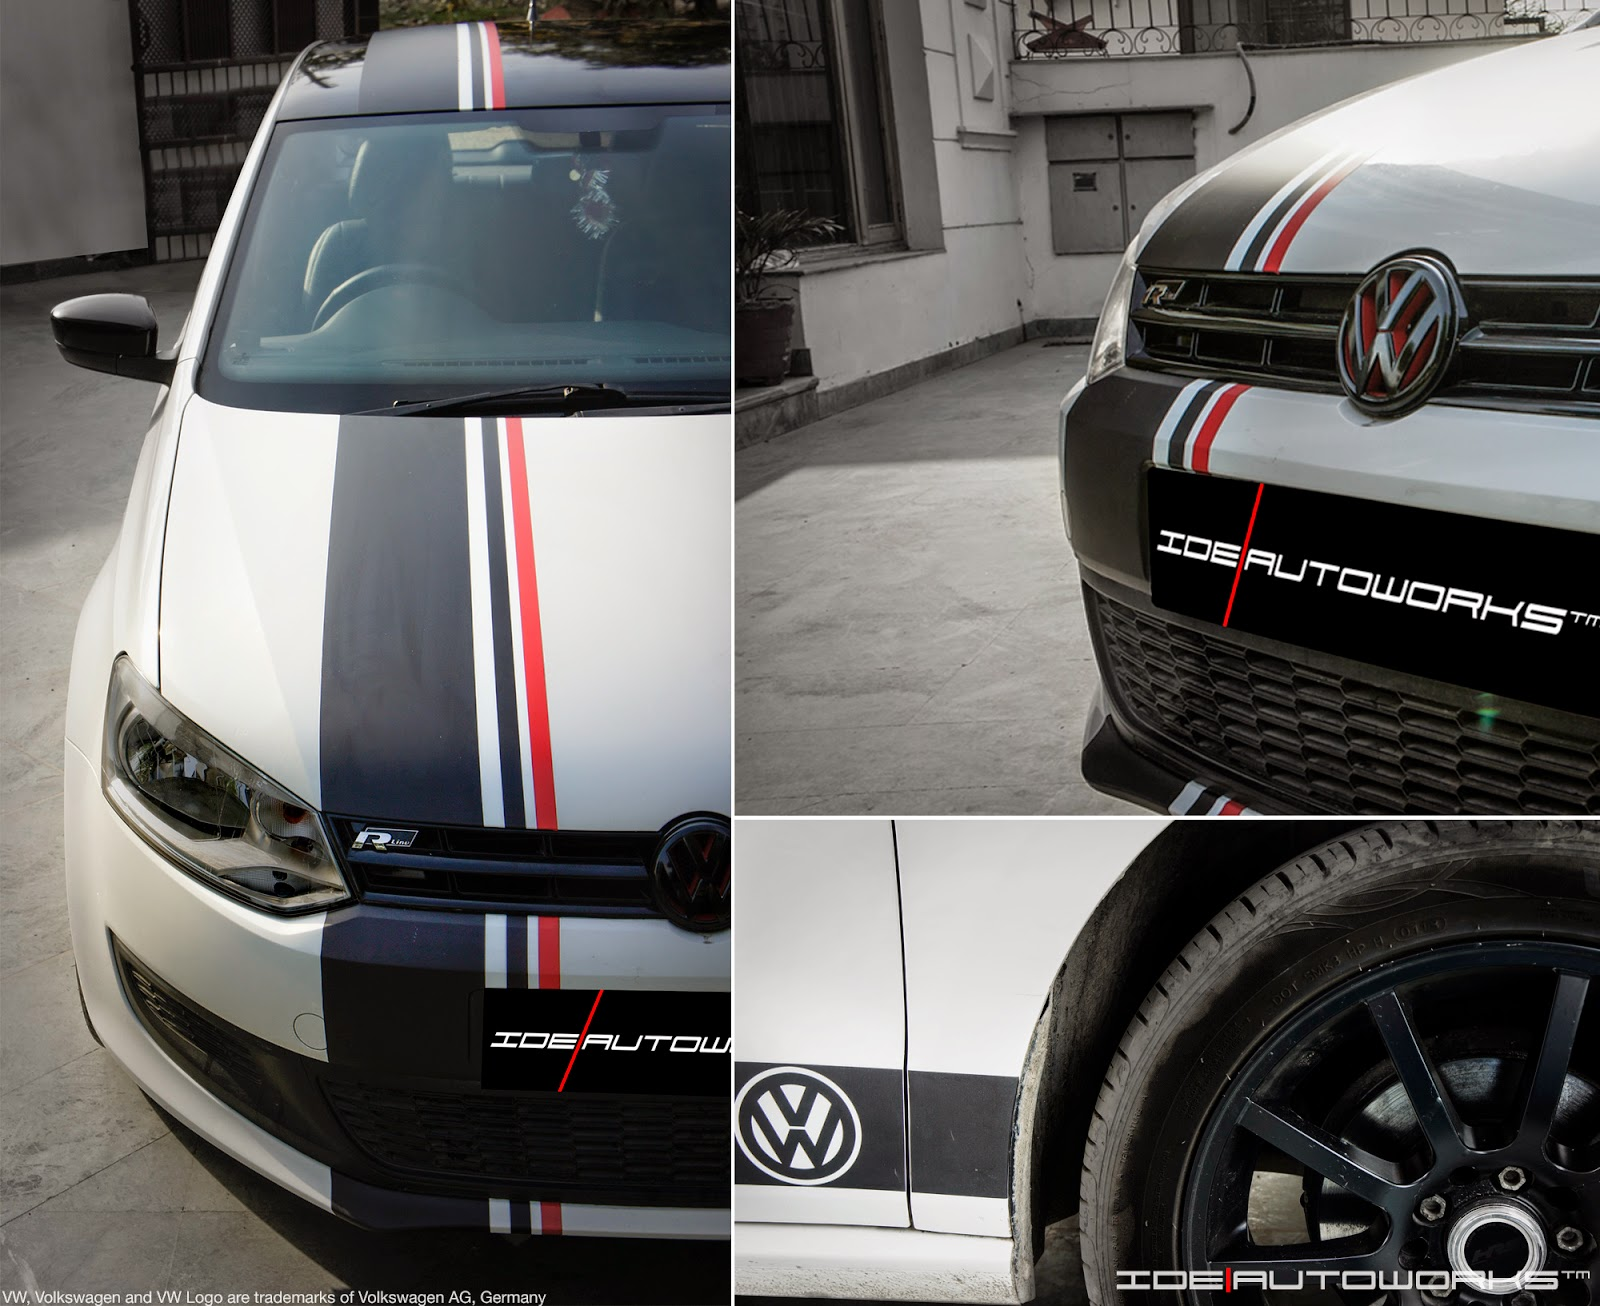 Vw Polo With Custom Racing Graphics Ide Autoworks